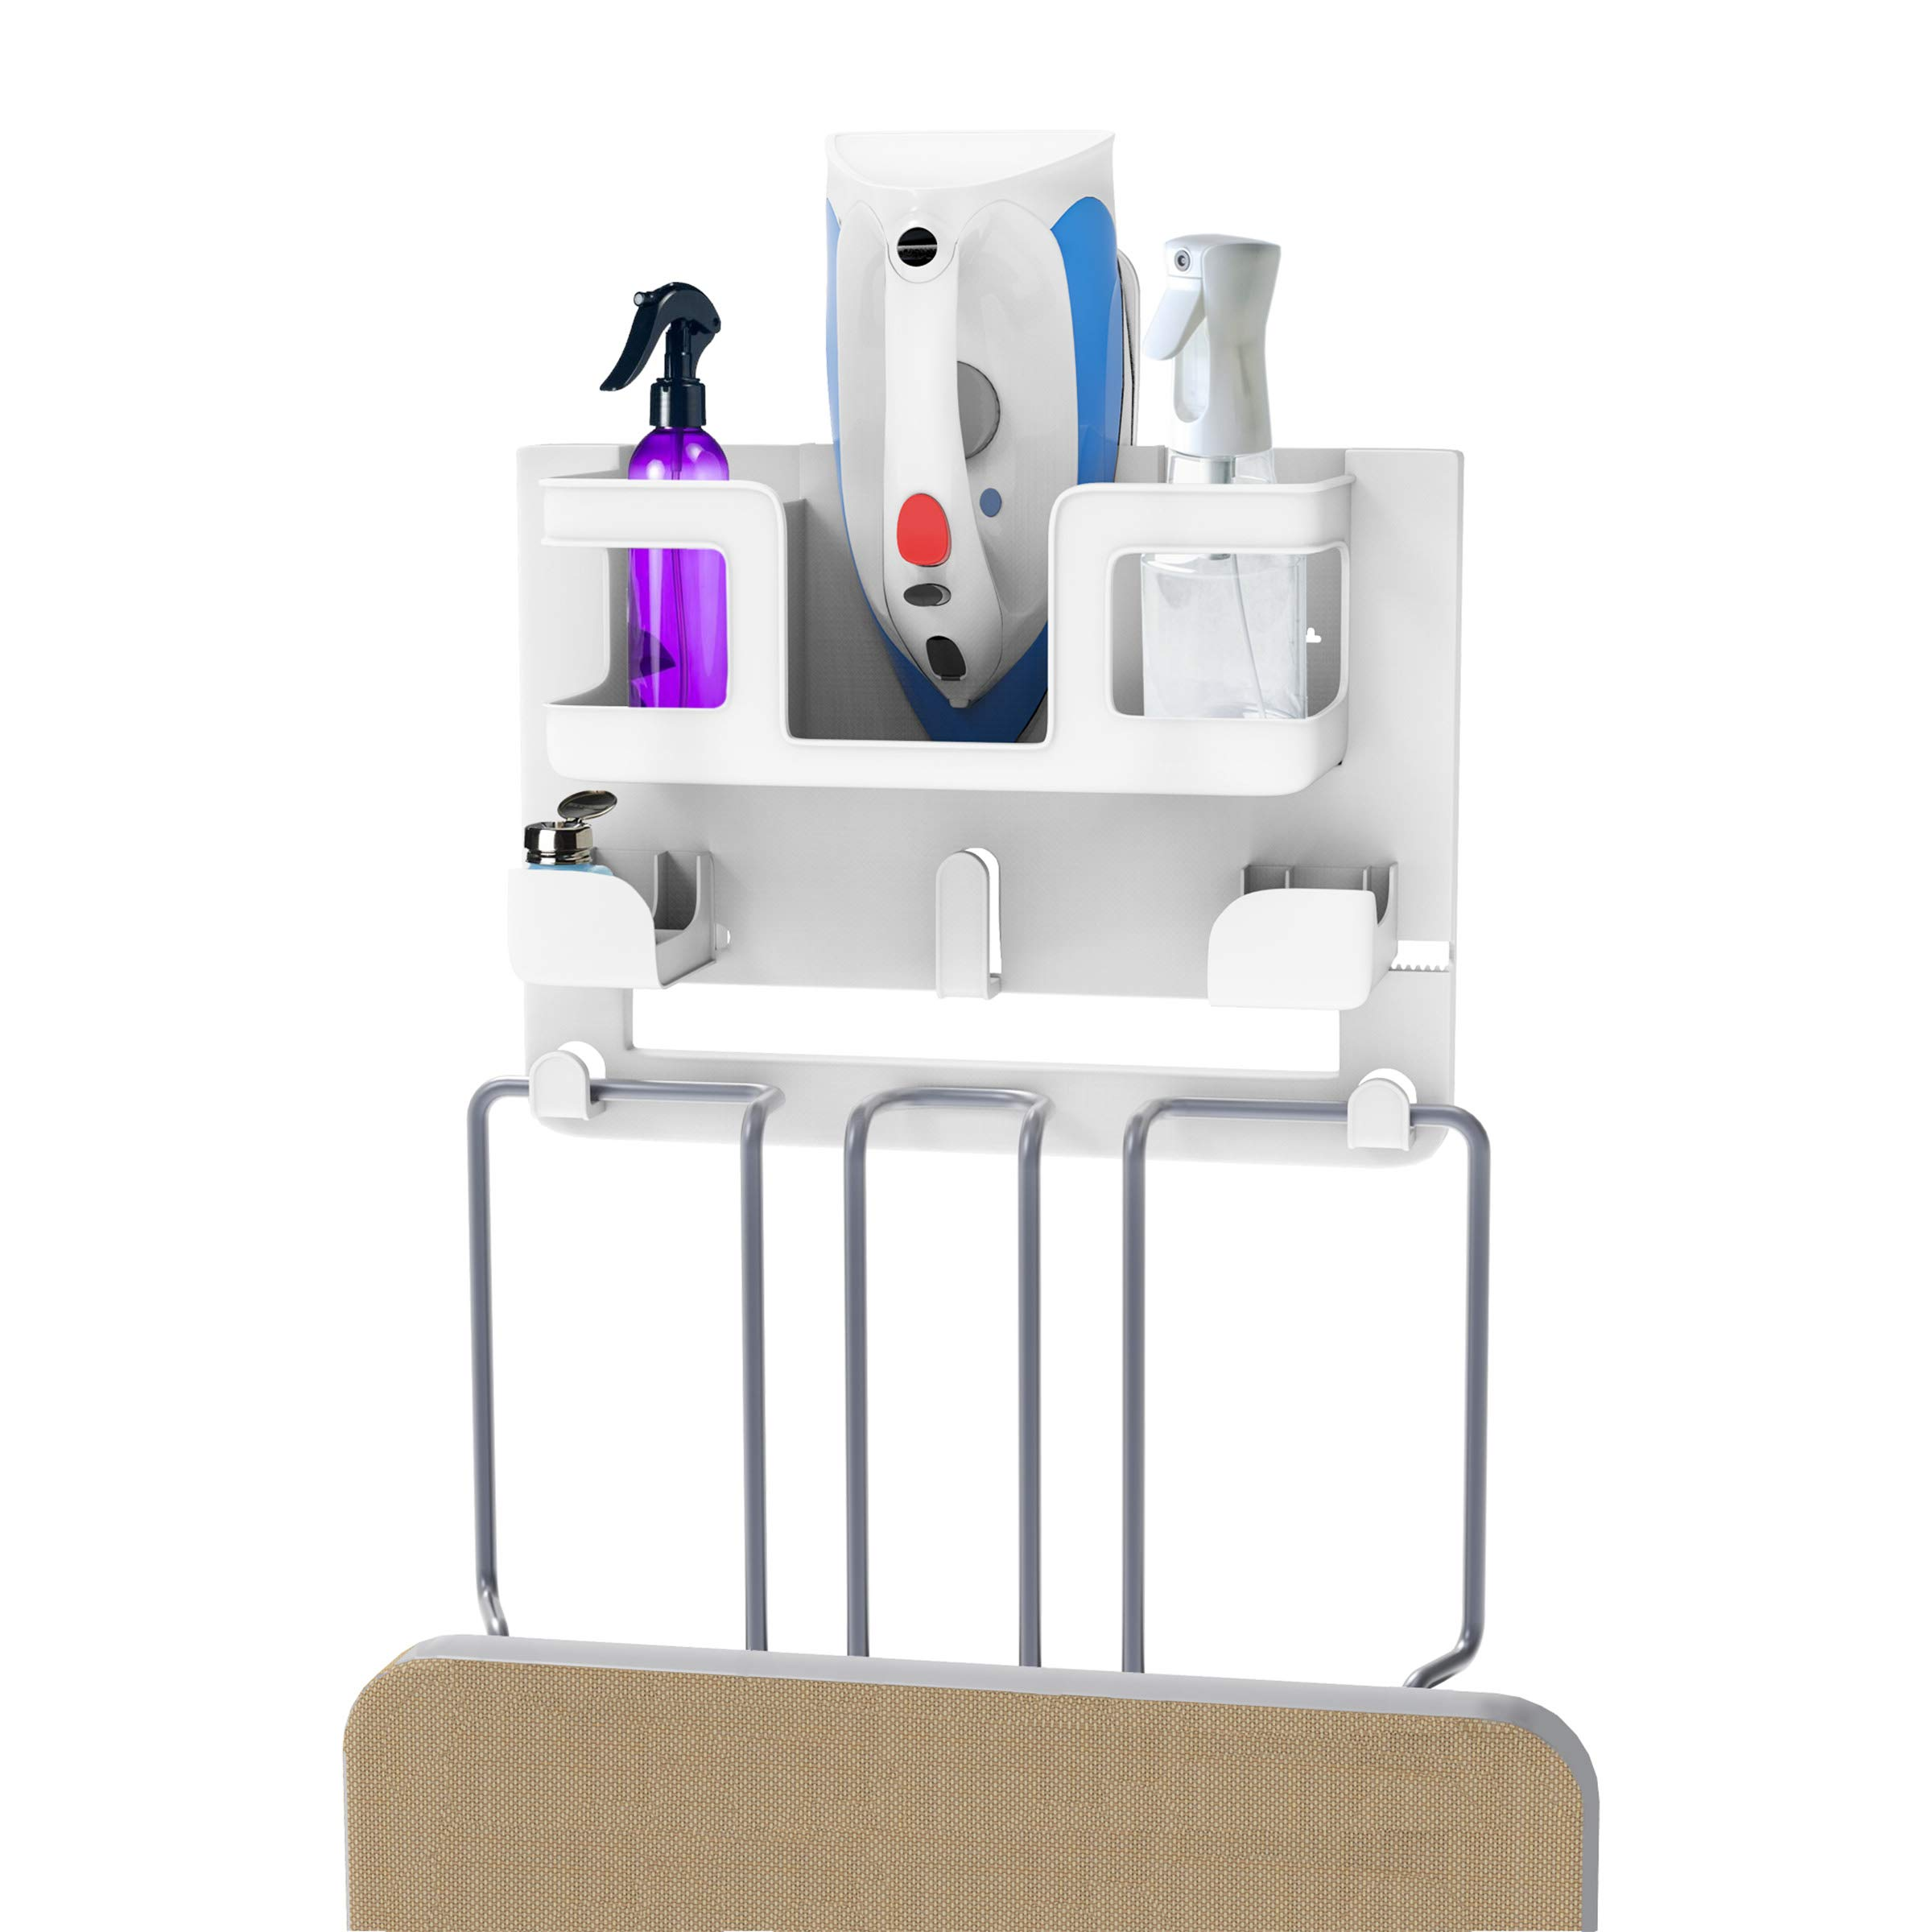 Lavish Home Organizer-Wall Mount Laundry Room Supplies Holder for Iron, Board, Spray Bottles, Starch and More-Space Saving Essential